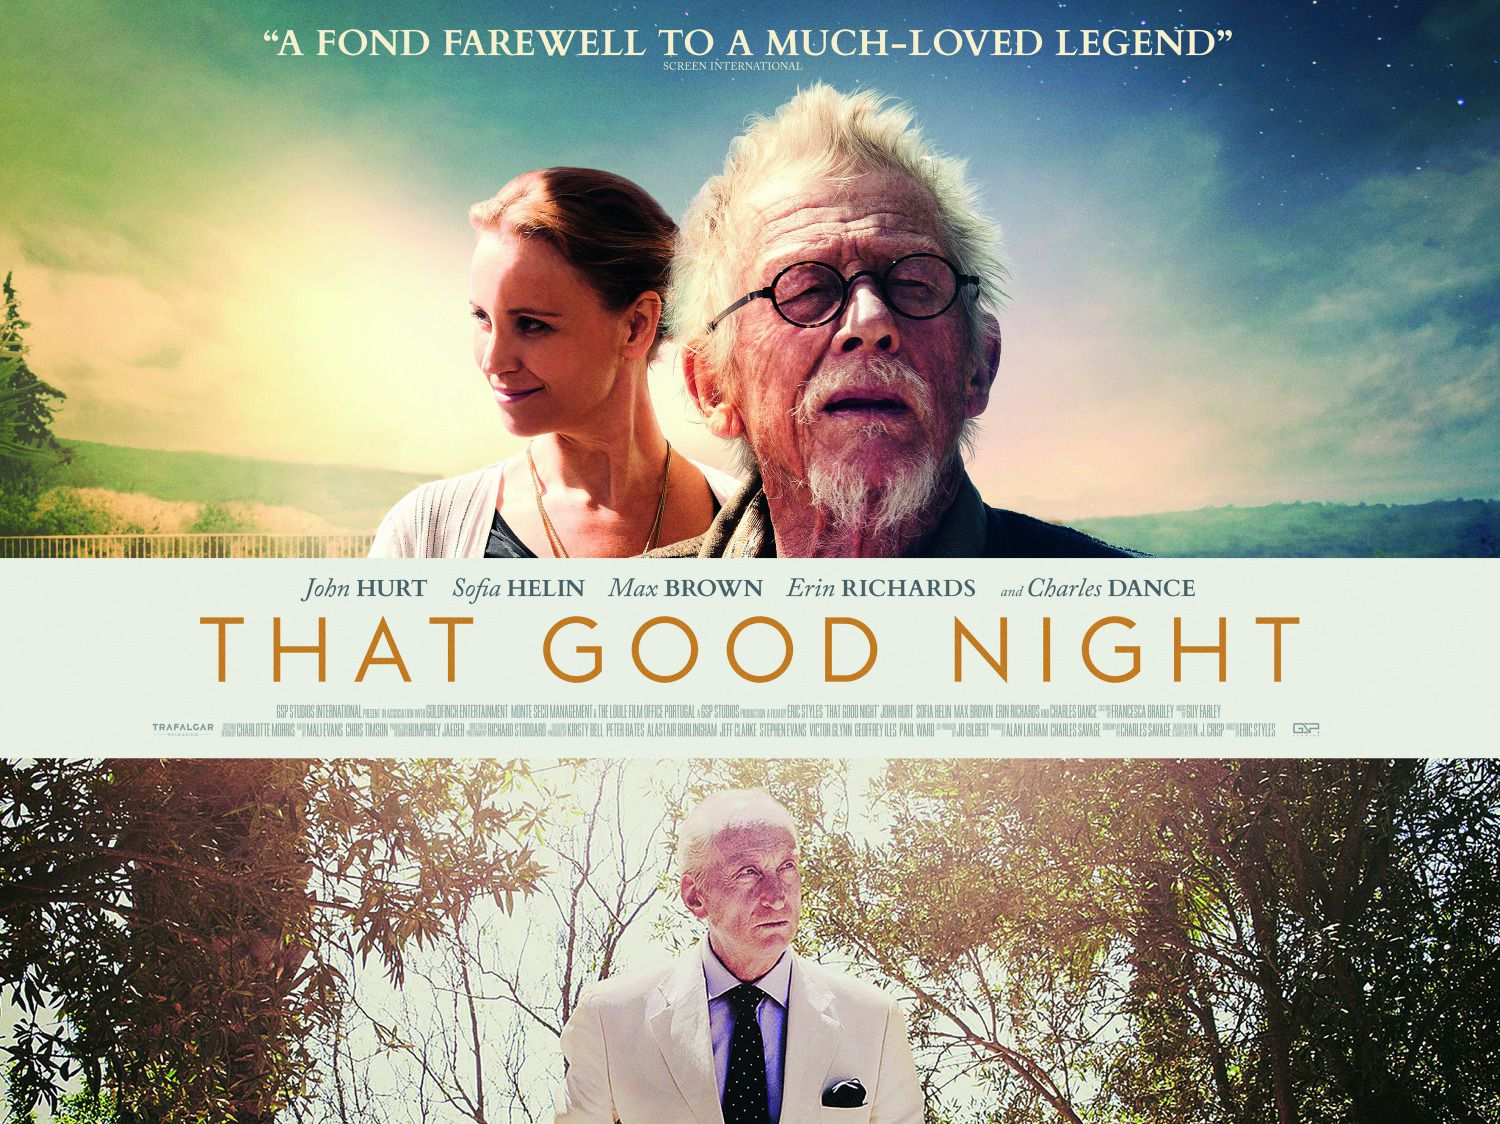 That Good Night - Cast: John Hurt, Sofia Helin, Max Brown, Erin Richards, Charles Dance - film poster